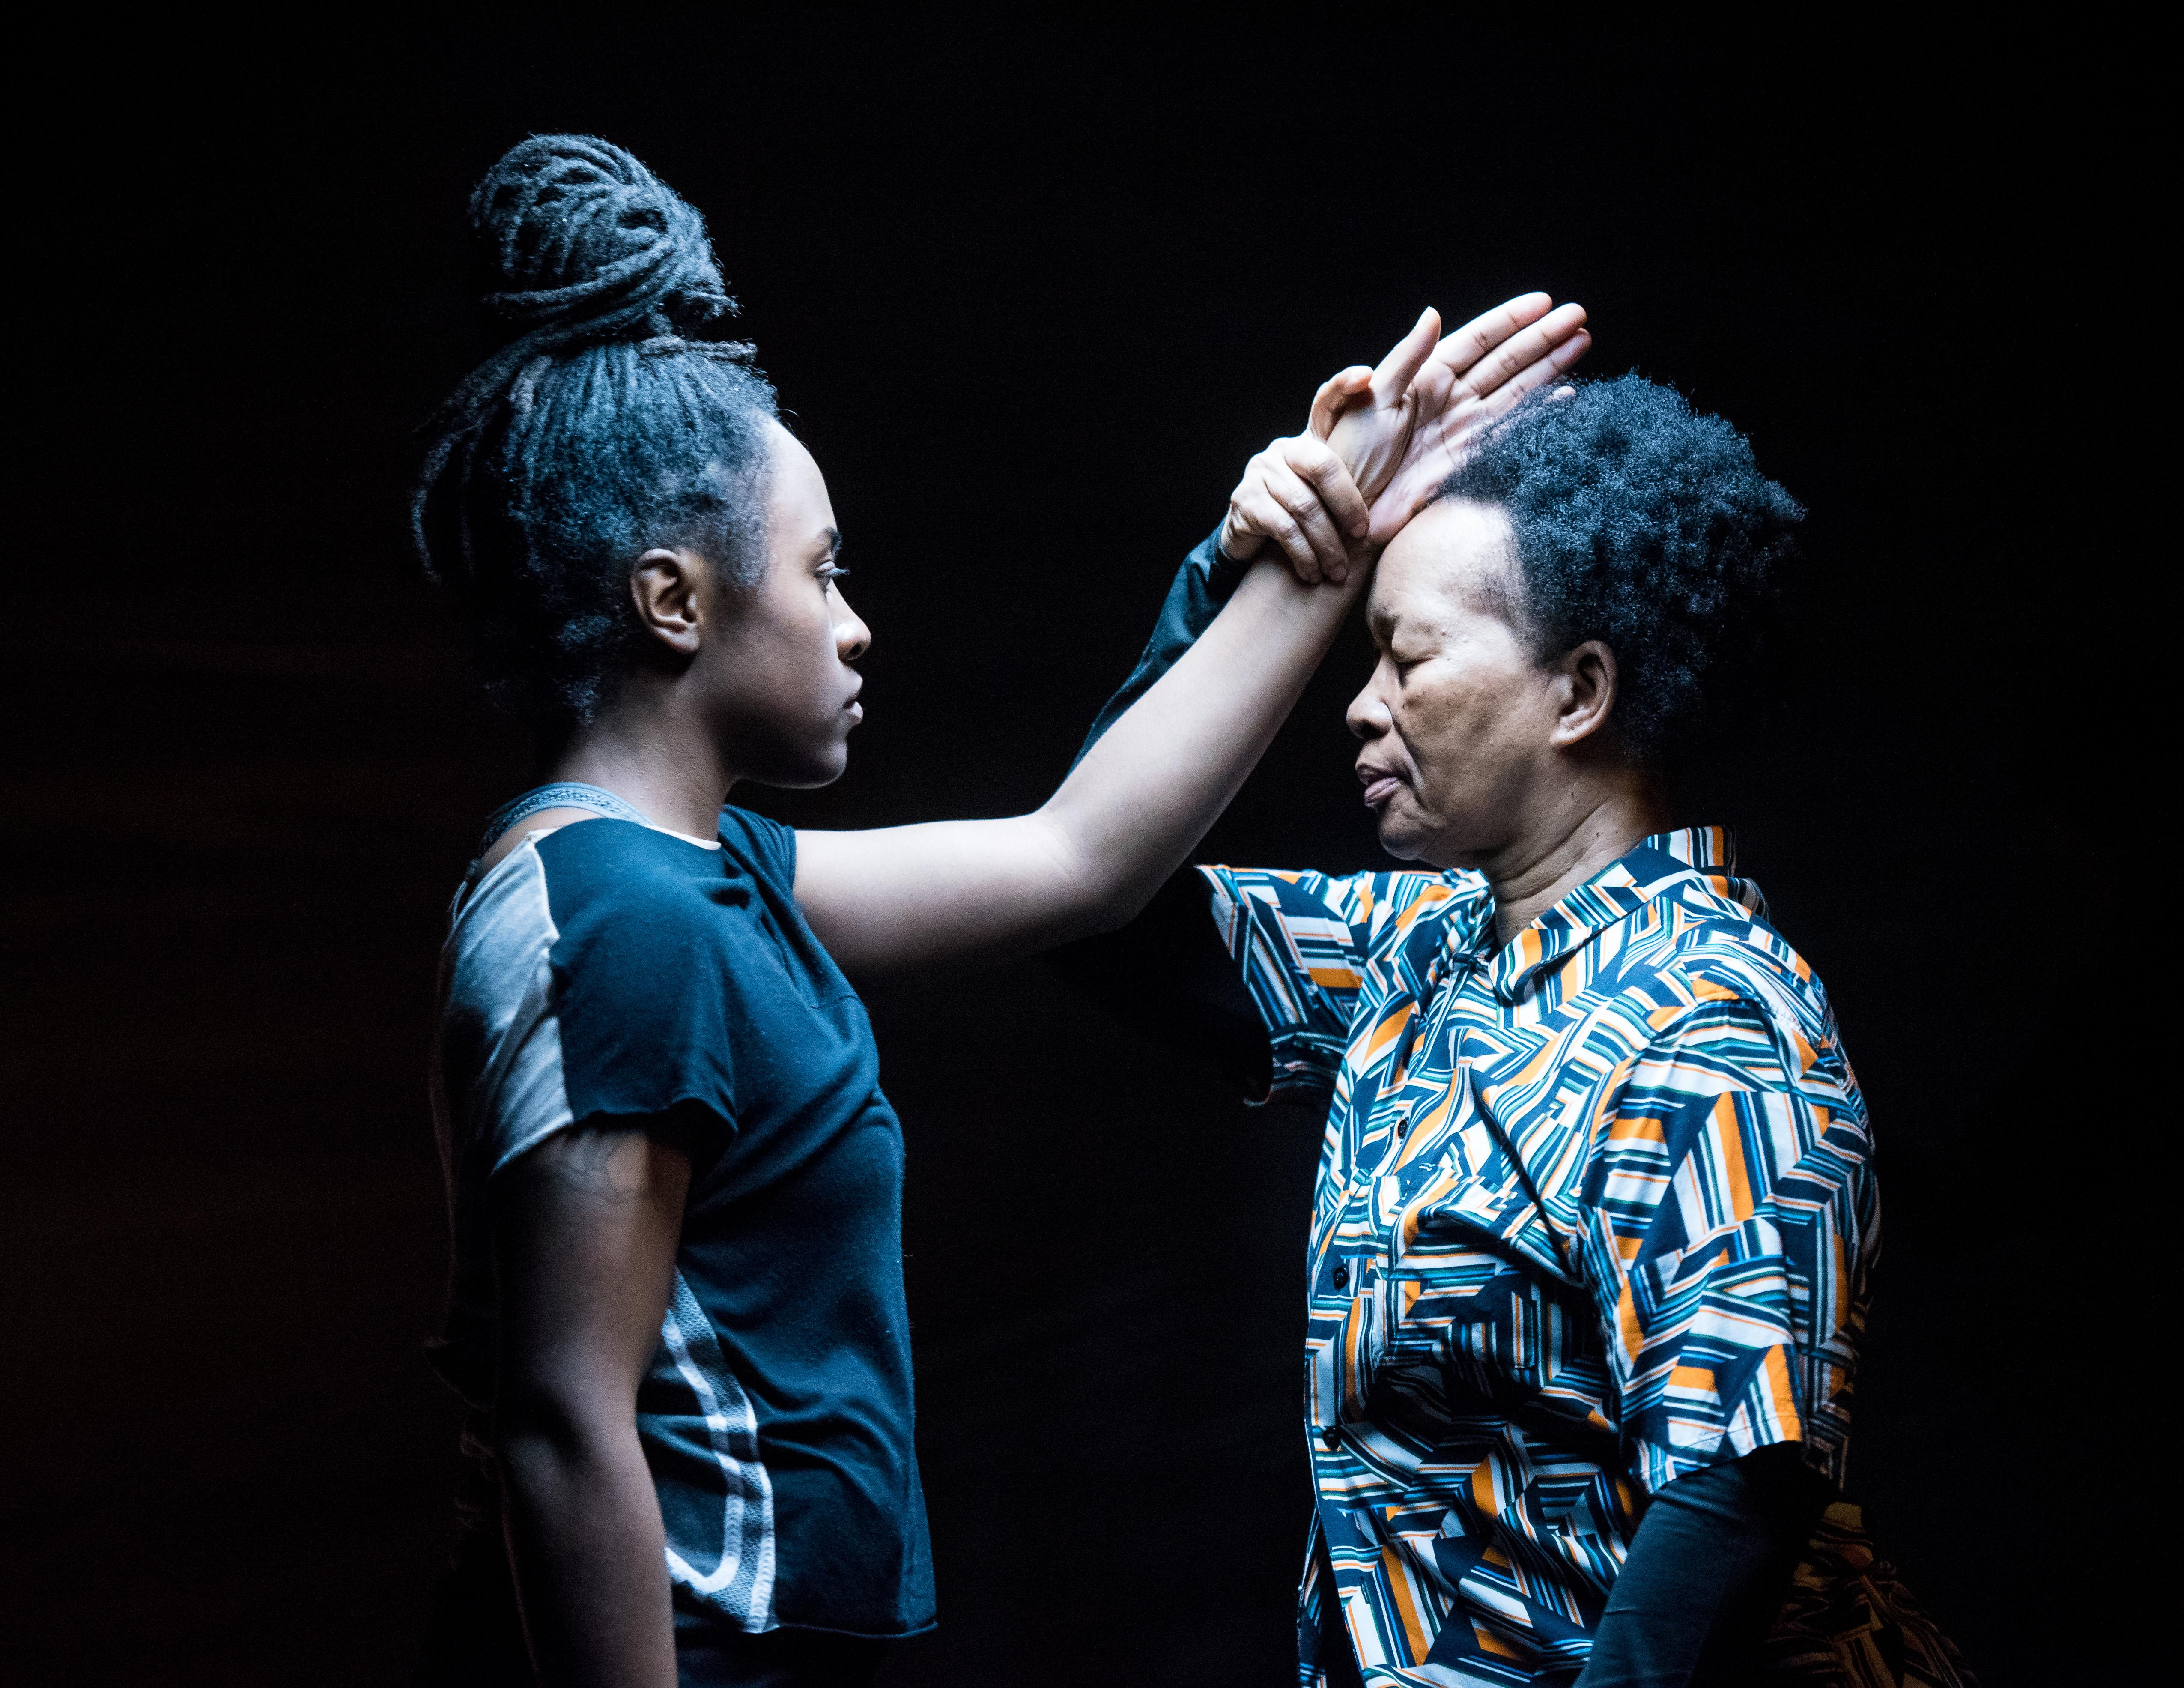 Two black women face one another eyes closed under a harsh fluorescent light. The older woman on the right holds the younger woman's outstretched arm by the wrist at her temple.